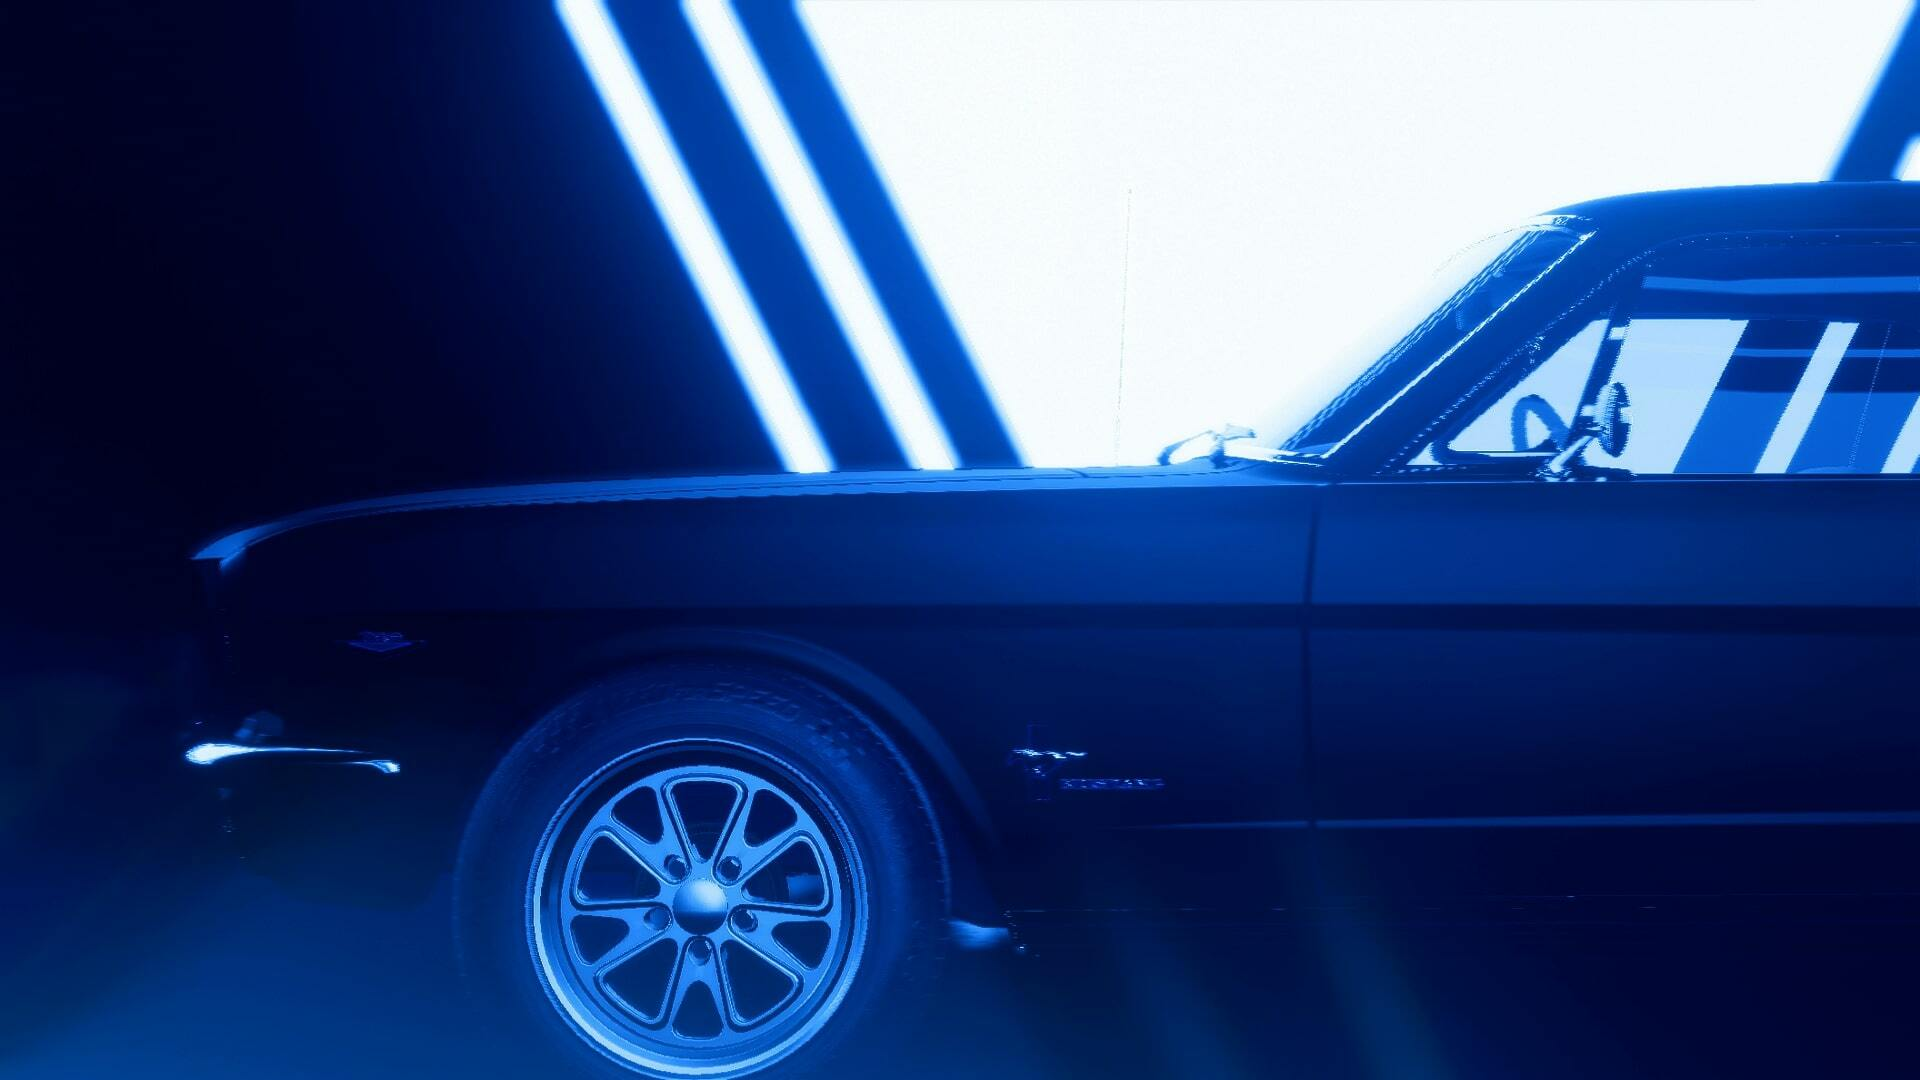 How to Find All the Collectibles and Activities in Need for Speed Heat